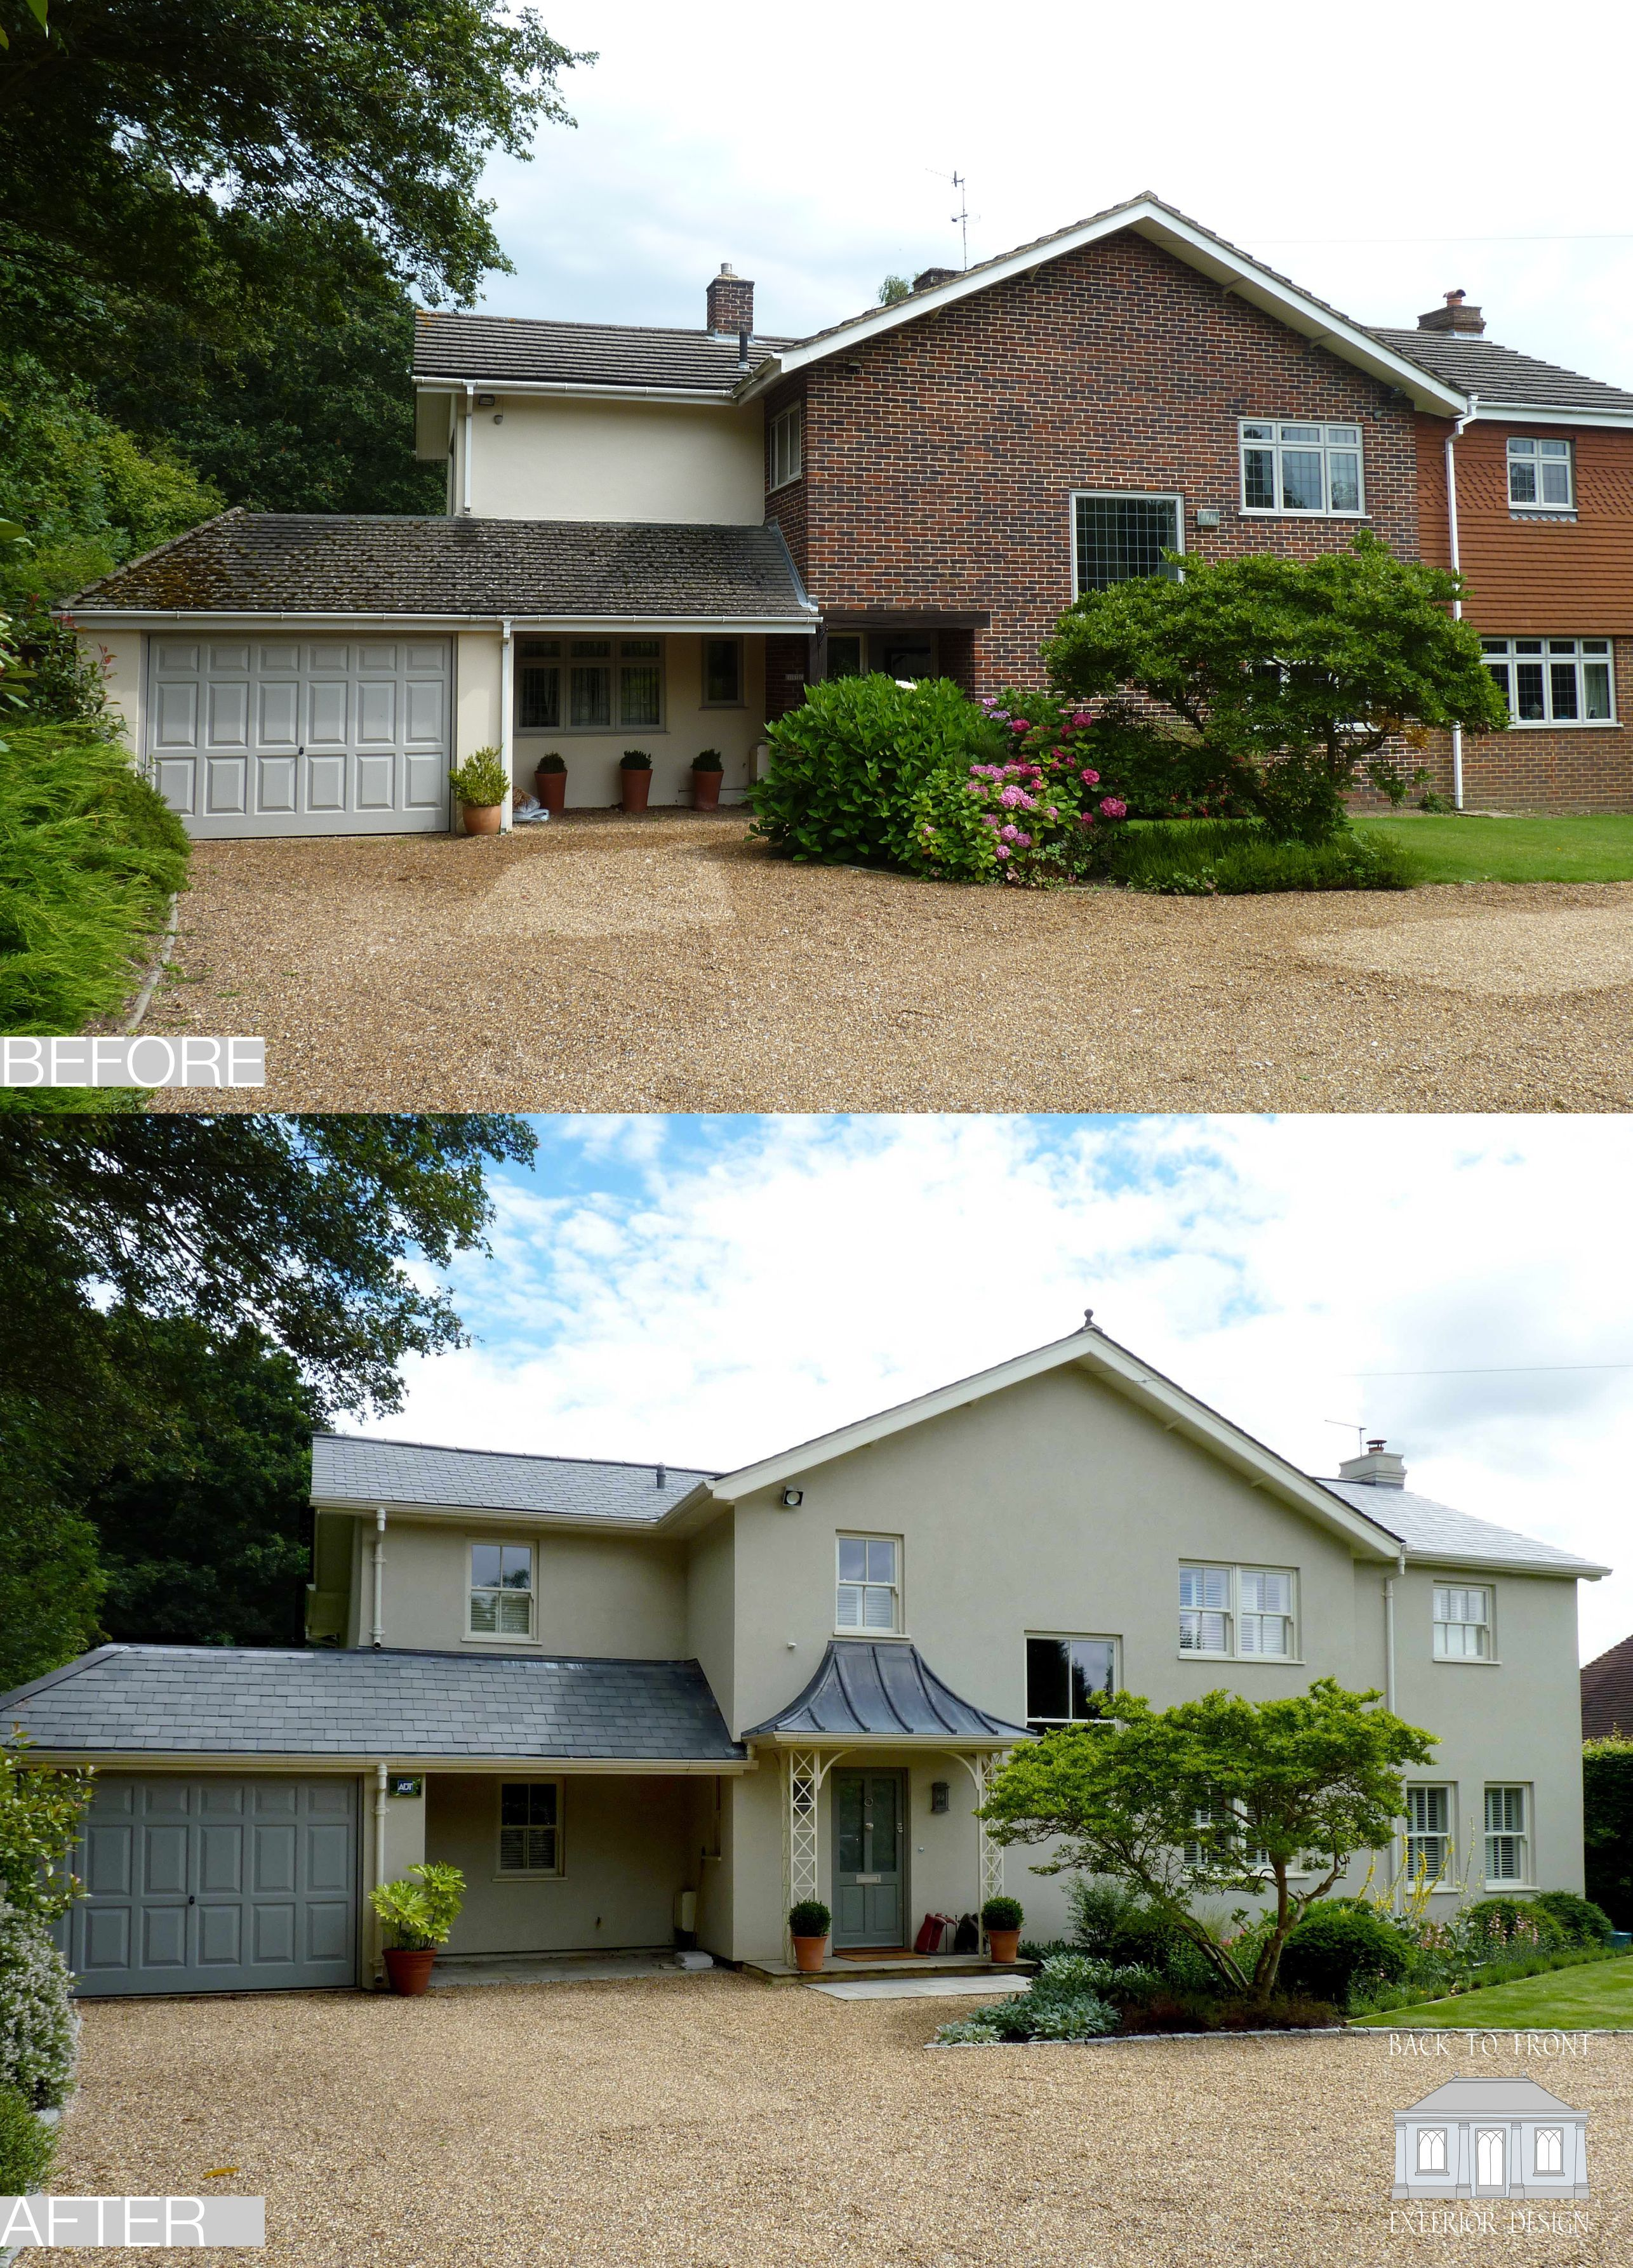 Exterior Transformation In Reigate, Surrey By Back To